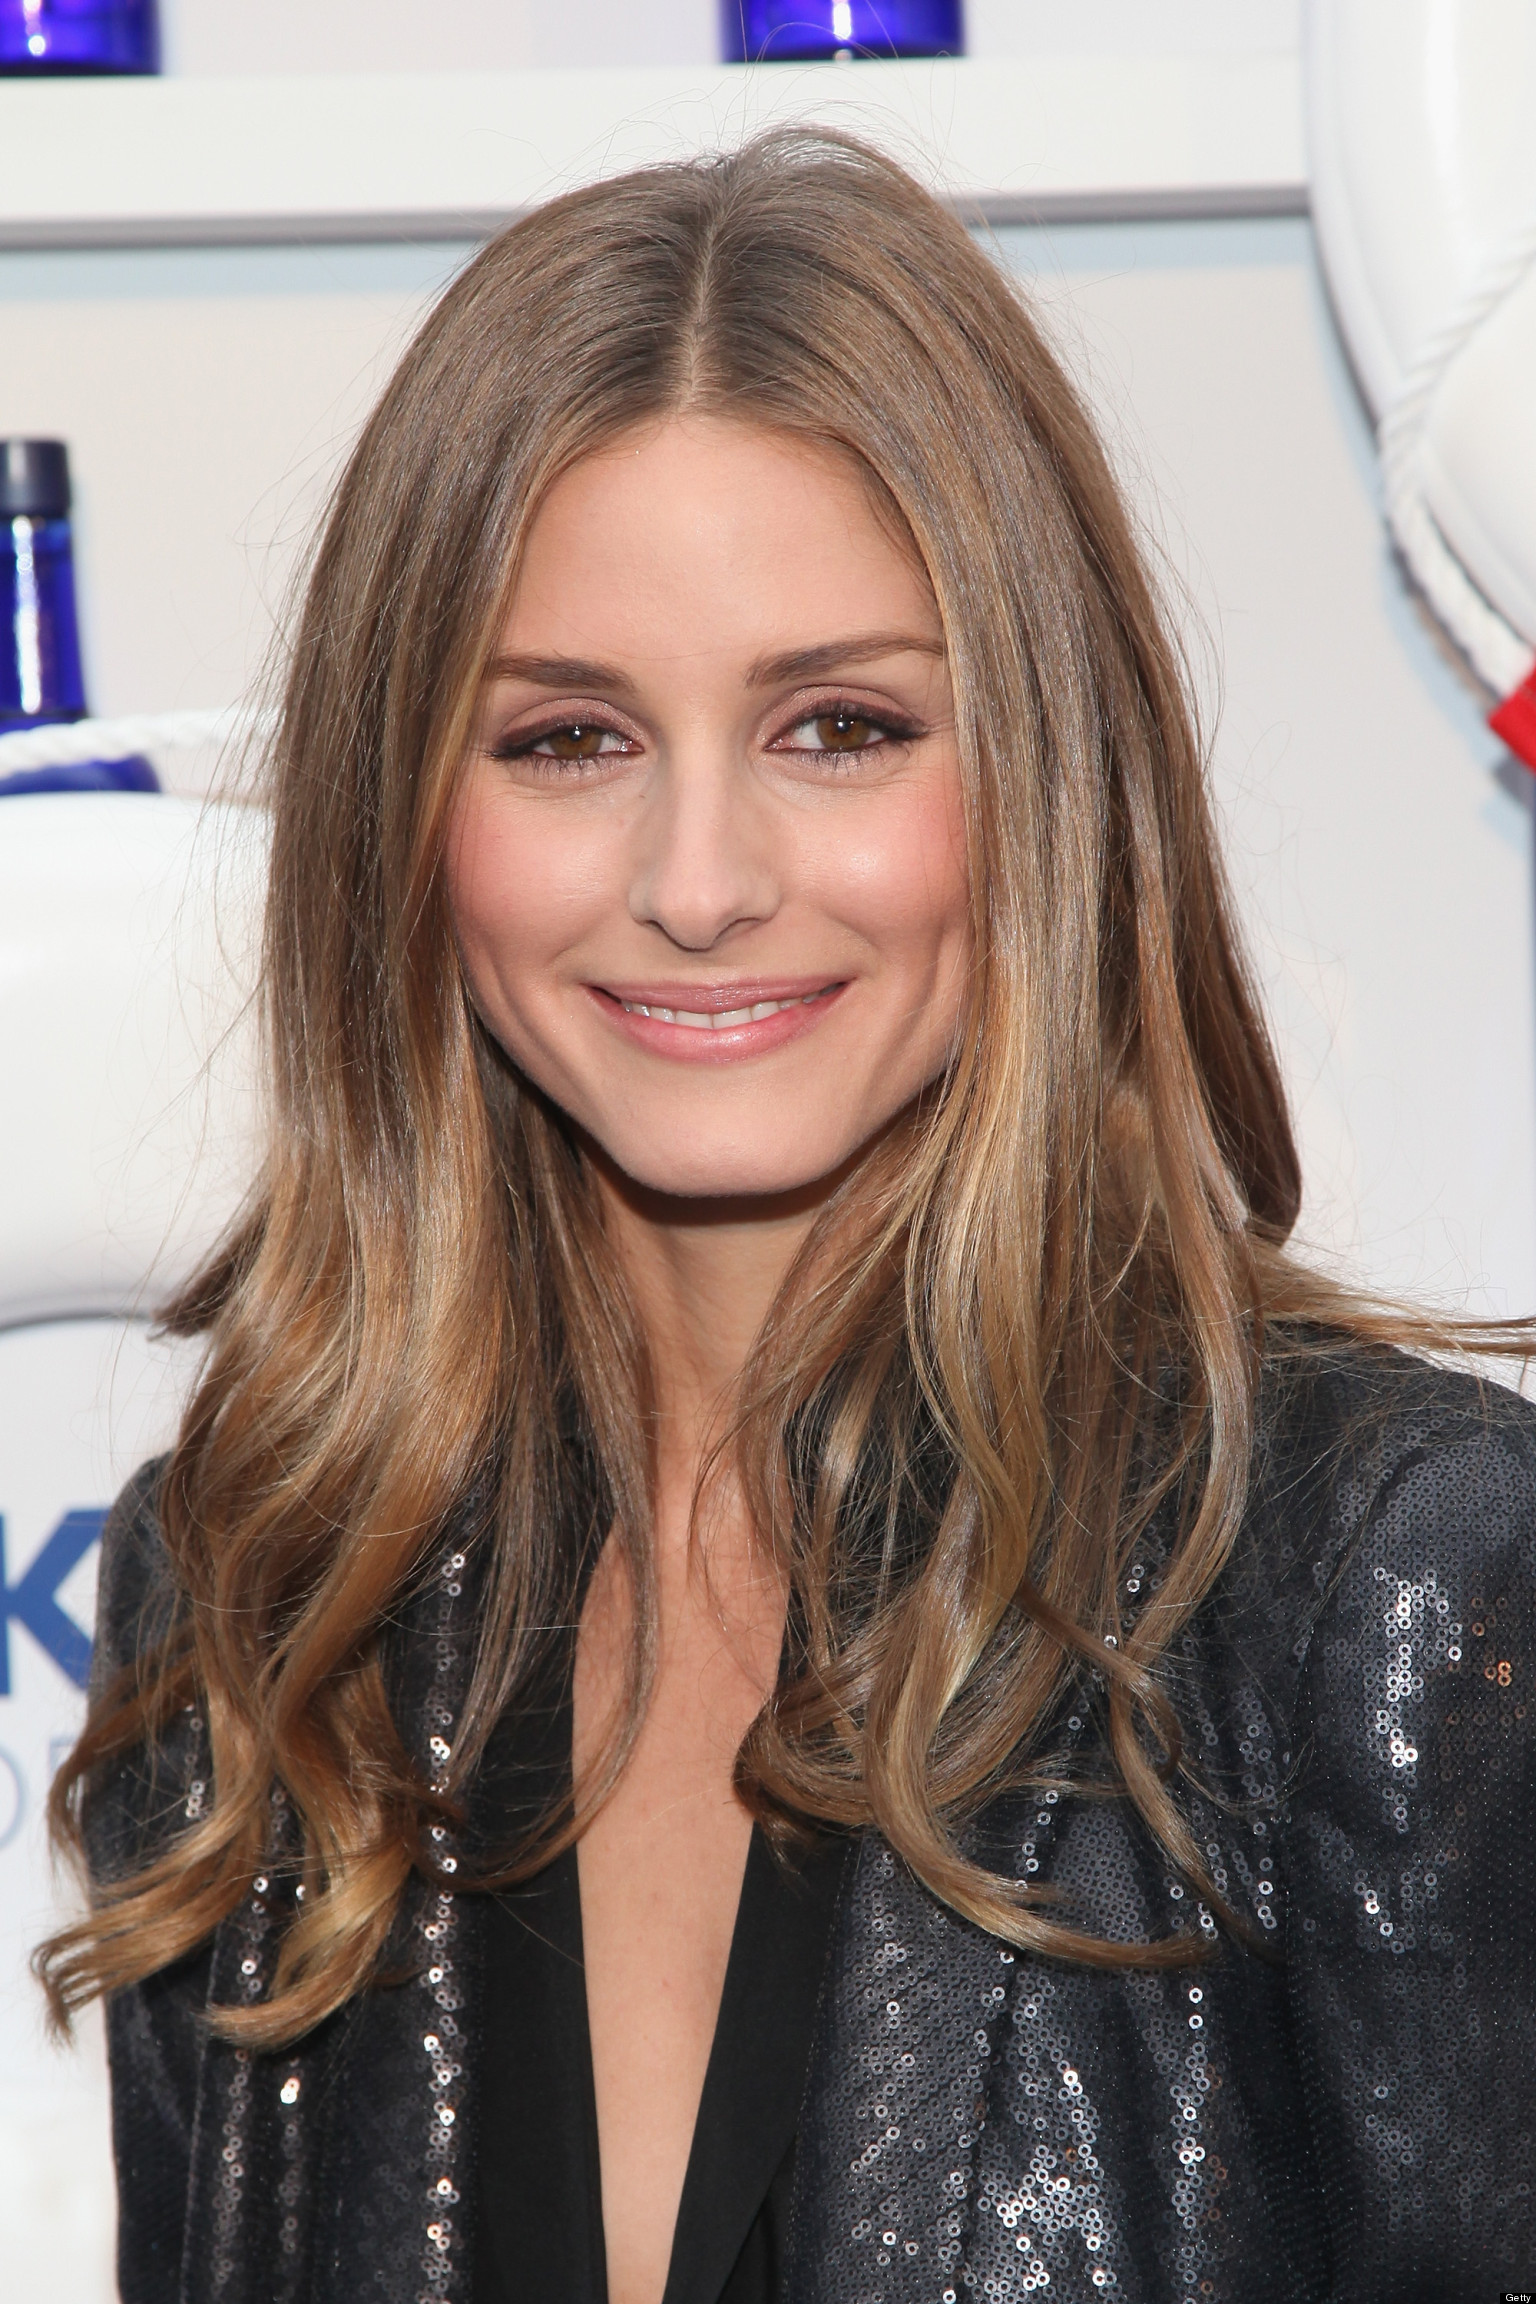 HQ Olivia Palermo Wallpapers | File 878.22Kb